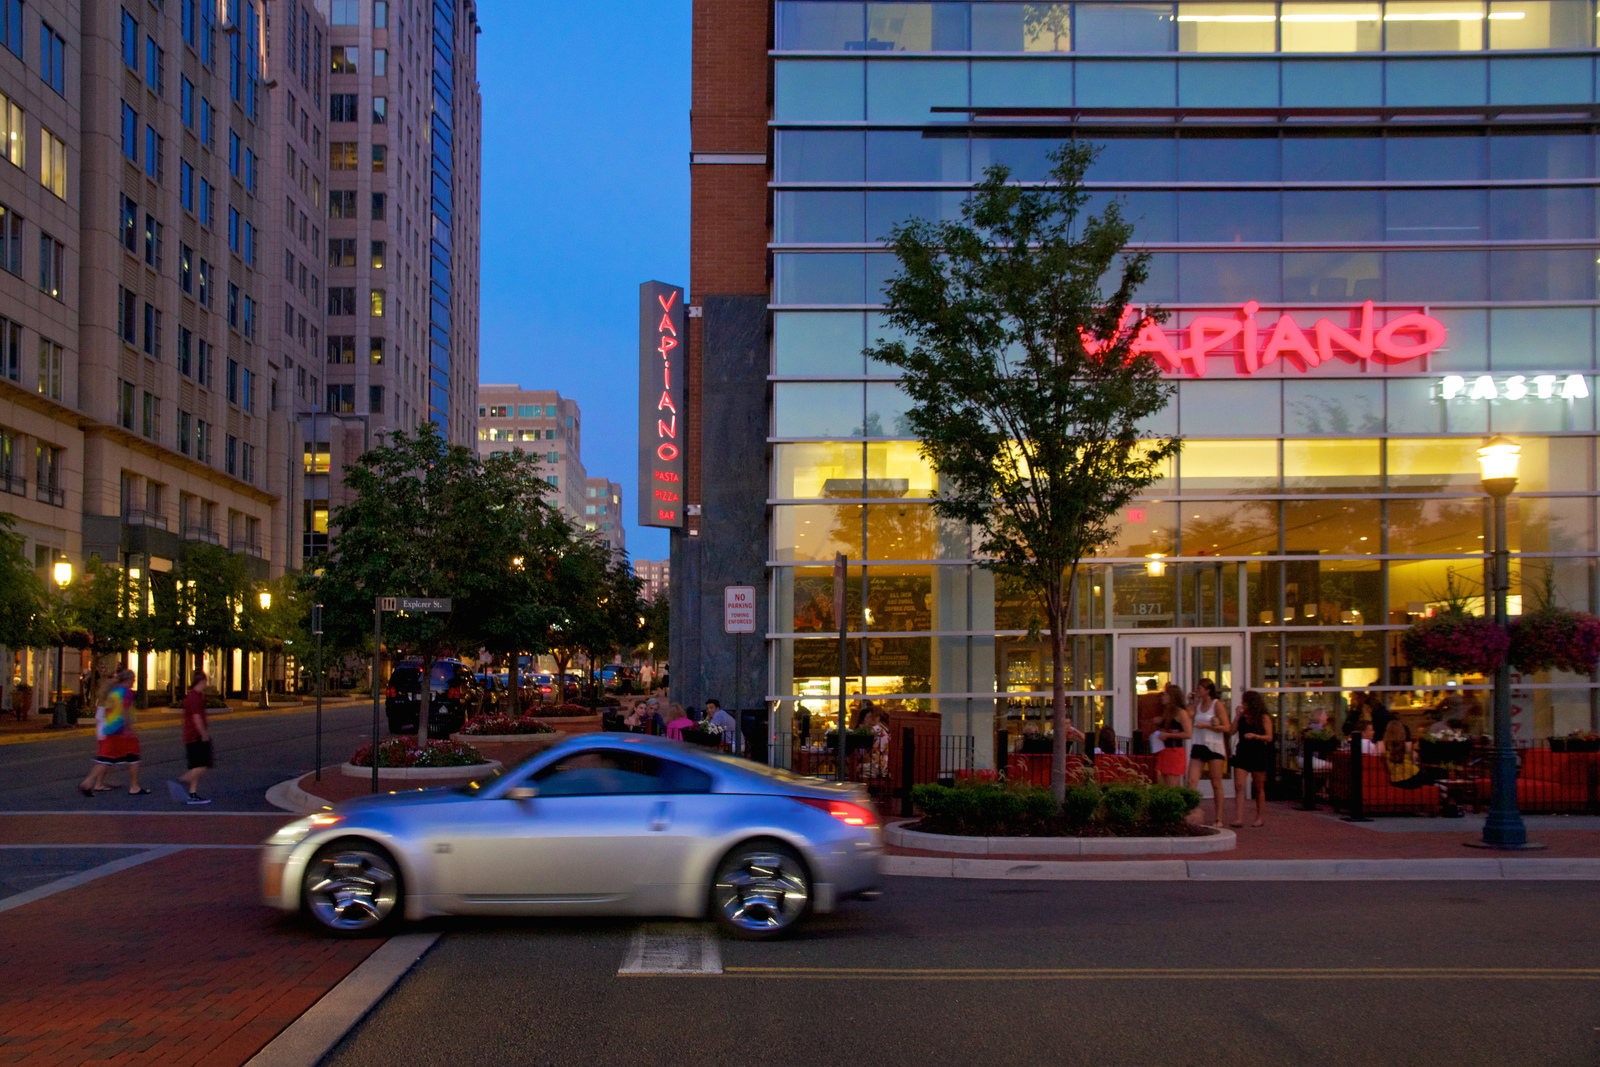 Enjoy high-end dining and shopping at the Reston Town Center which is just a ten minute drive away from Westmoore.